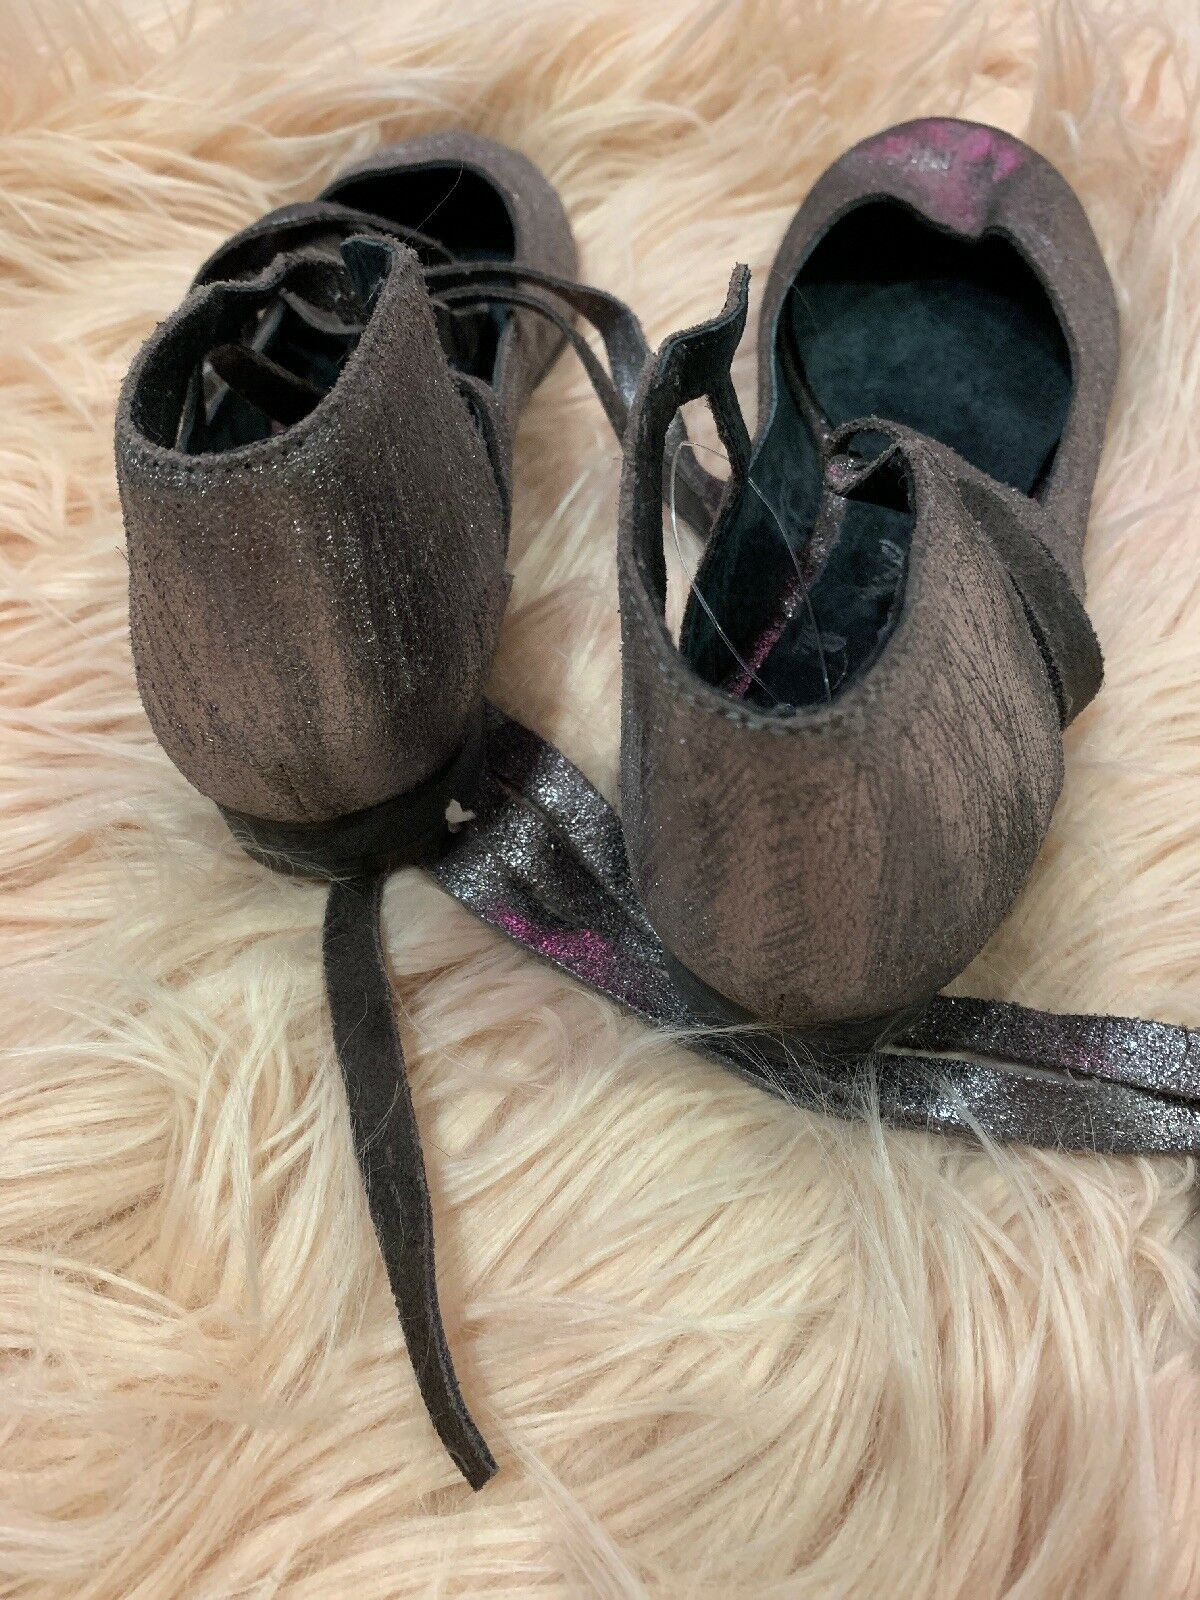 New New New  98 Free People Flat Atlas Silver Metallic Flats Suede Lace Up 37 f2d3a8